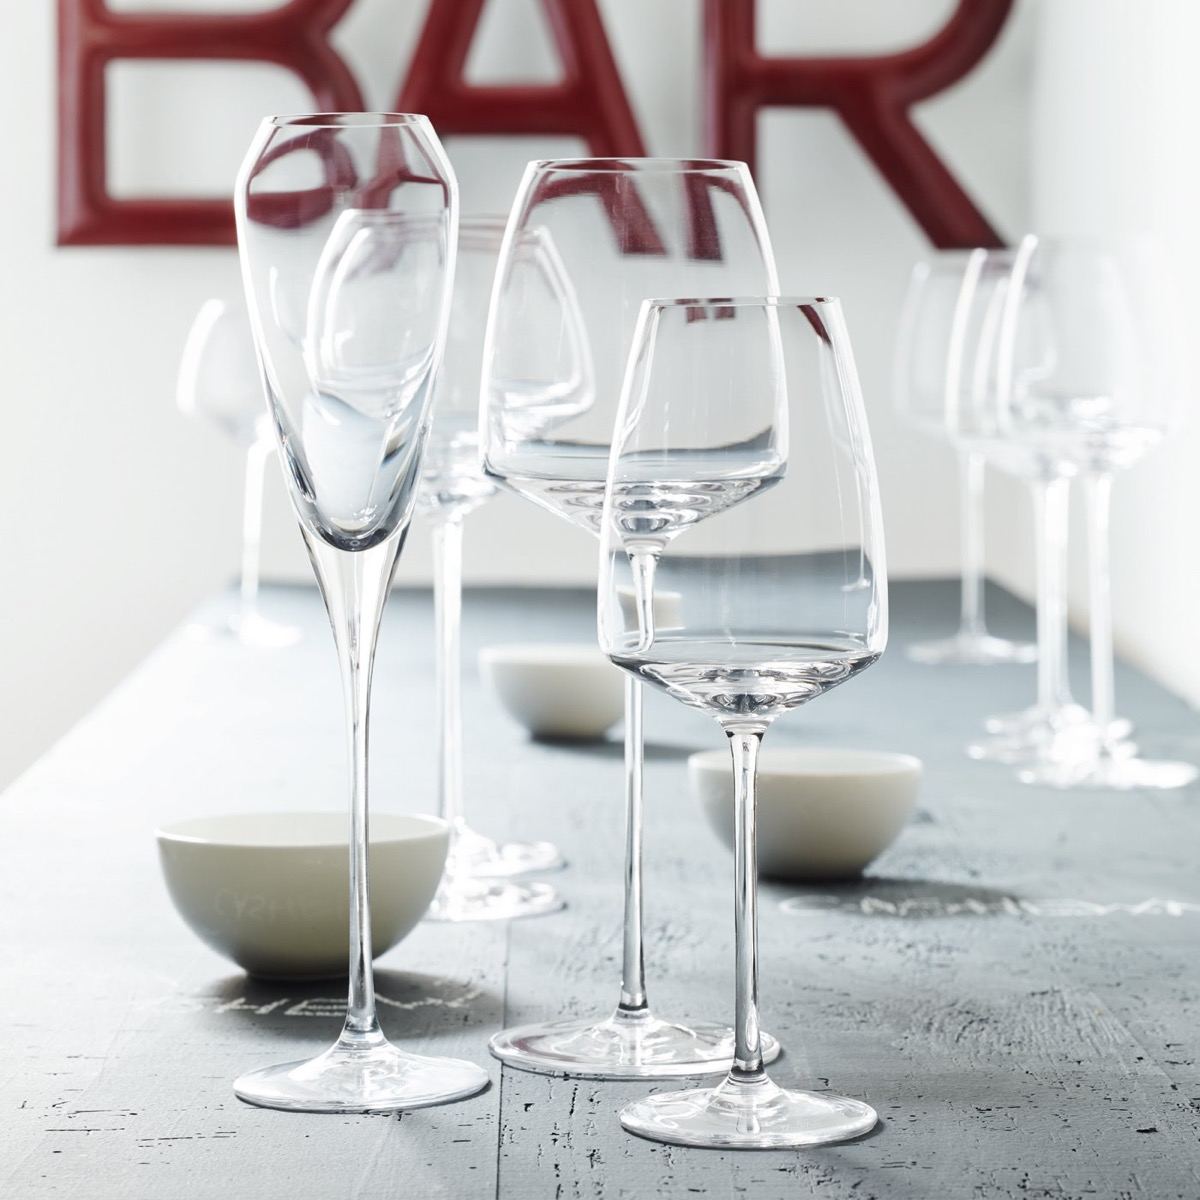 gifts-for-architect-license-celebration-bauhaus-walter-gropius-wine-glasses